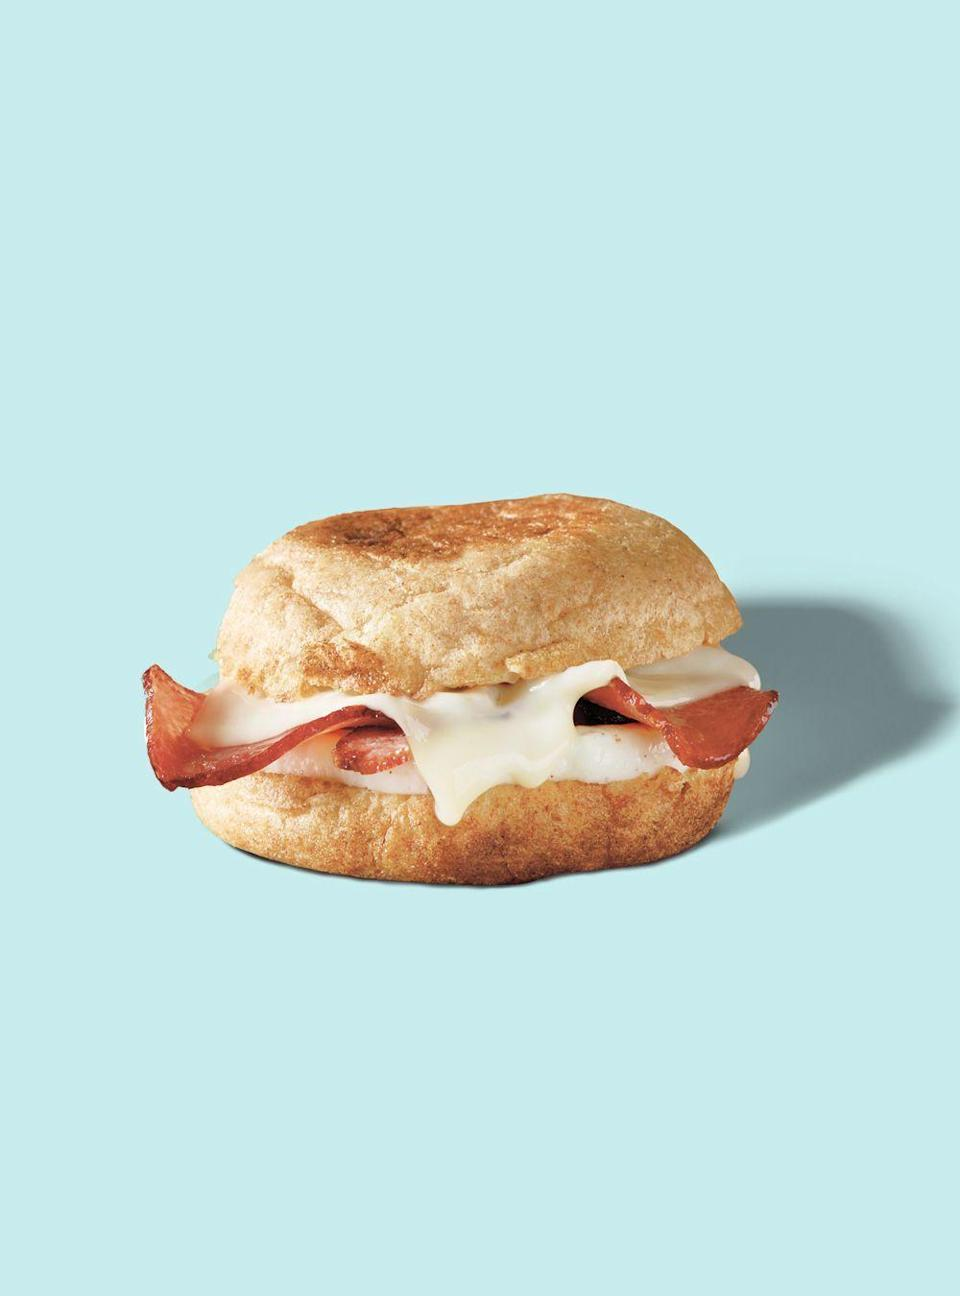 """<p><strong>Starbucks</strong></p><p>starbucks.com</p><p><a href=""""https://www.starbucks.com/menu/product/368/single?parent=%2Ffood%2Fhot-breakfast%2Fbreakfast-sandwiches-and-wraps"""" rel=""""nofollow noopener"""" target=""""_blank"""" data-ylk=""""slk:Order Now"""" class=""""link rapid-noclick-resp"""">Order Now</a></p><p><strong>Calories</strong>: 230</p><p><strong>Sodium</strong>: 550mg</p><p><strong>Total Carbohydrates</strong>: 28g</p><p><strong>Protein</strong>: 17g</p><p>Bacon isn't always synonymous with better for you, but in this case, Starbucks' turkey bacon sandwich contains around half the sodium of other sandwiches on the menu. This includes <a href=""""https://www.goodhousekeeping.com/health/diet-nutrition/a32958544/starbucks-impossible-breakfast-sandwich-calories/"""" rel=""""nofollow noopener"""" target=""""_blank"""" data-ylk=""""slk:the Impossible meat option"""" class=""""link rapid-noclick-resp"""">the Impossible meat option</a>, which has significantly more calories and salt — something that many may not realize at first. """"If you're actually following a stricter vegetarian routine, then I'd understand why the Impossible option may appeal to you — but if you're eating meat and just think that a faux option will be better for you, you're actually better off eating this instead,"""" Sassos explains. Plus, this is one of the menu's customizable breakfast sandwiches — meaning you can remove any of its components to your liking.</p><p><strong>Nutrition Lab Pro Tip: </strong>This option has less fiber than the chain's spinach egg-white wrap as it isn't made with any vegetables. Try adding <strong>a container of the chain's <a href=""""https://www.starbucks.com/menu/product/2122257/single?parent=%2Ffood%2Fsnacks-and-sweets%2Fspreads"""" rel=""""nofollow noopener"""" target=""""_blank"""" data-ylk=""""slk:avocado spread"""" class=""""link rapid-noclick-resp"""">avocado spread</a></strong>, which contains only 90 calories and 5g of fiber-rich carbohydrates.<br></p>"""